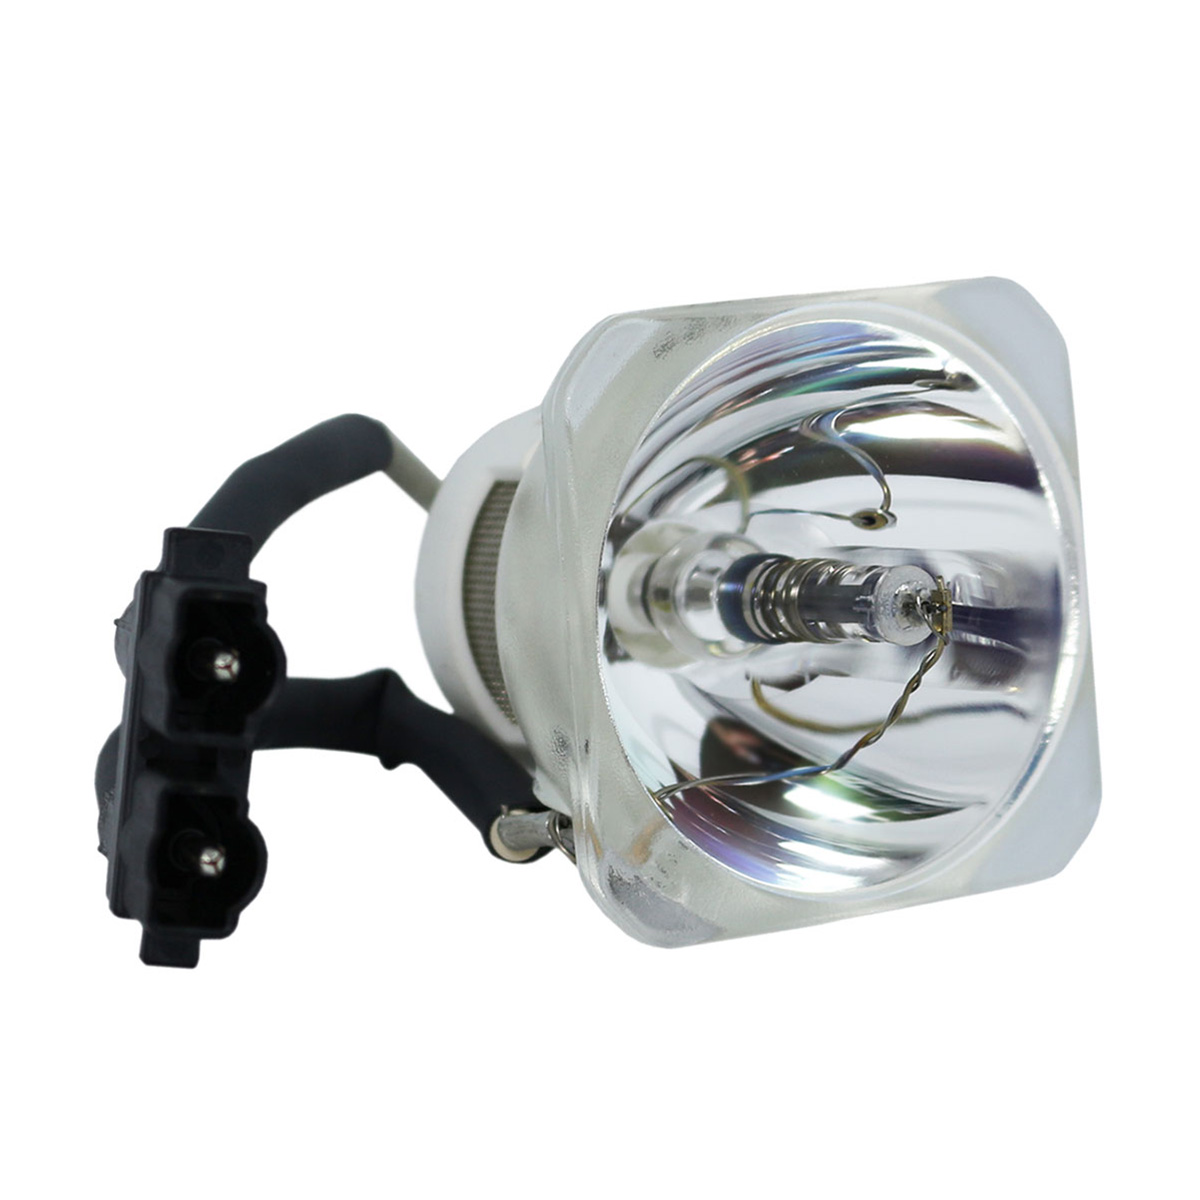 Original Ushio Projector Lamp Replacement with Housing for Kindermann 8970 - image 1 of 5